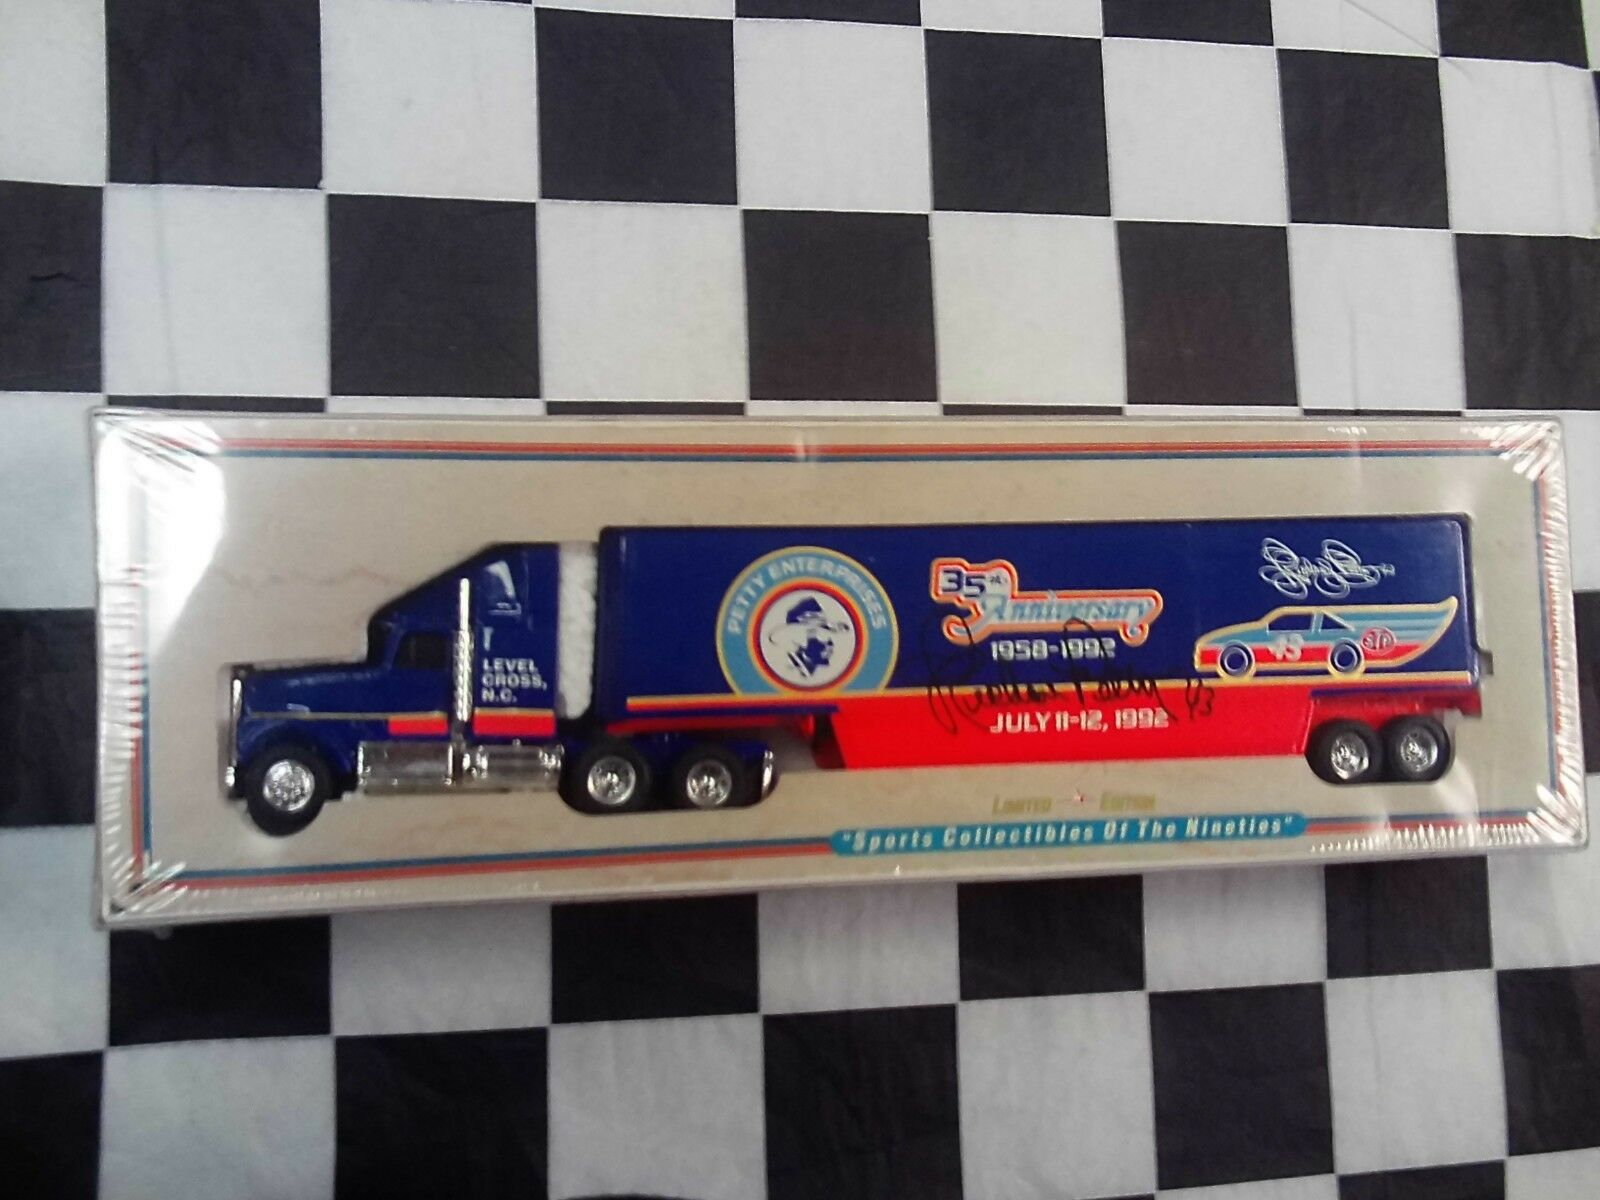 Ertl Richard Petty Enterprises 35th aniversario 1/64 Camión Transportador autógrafo